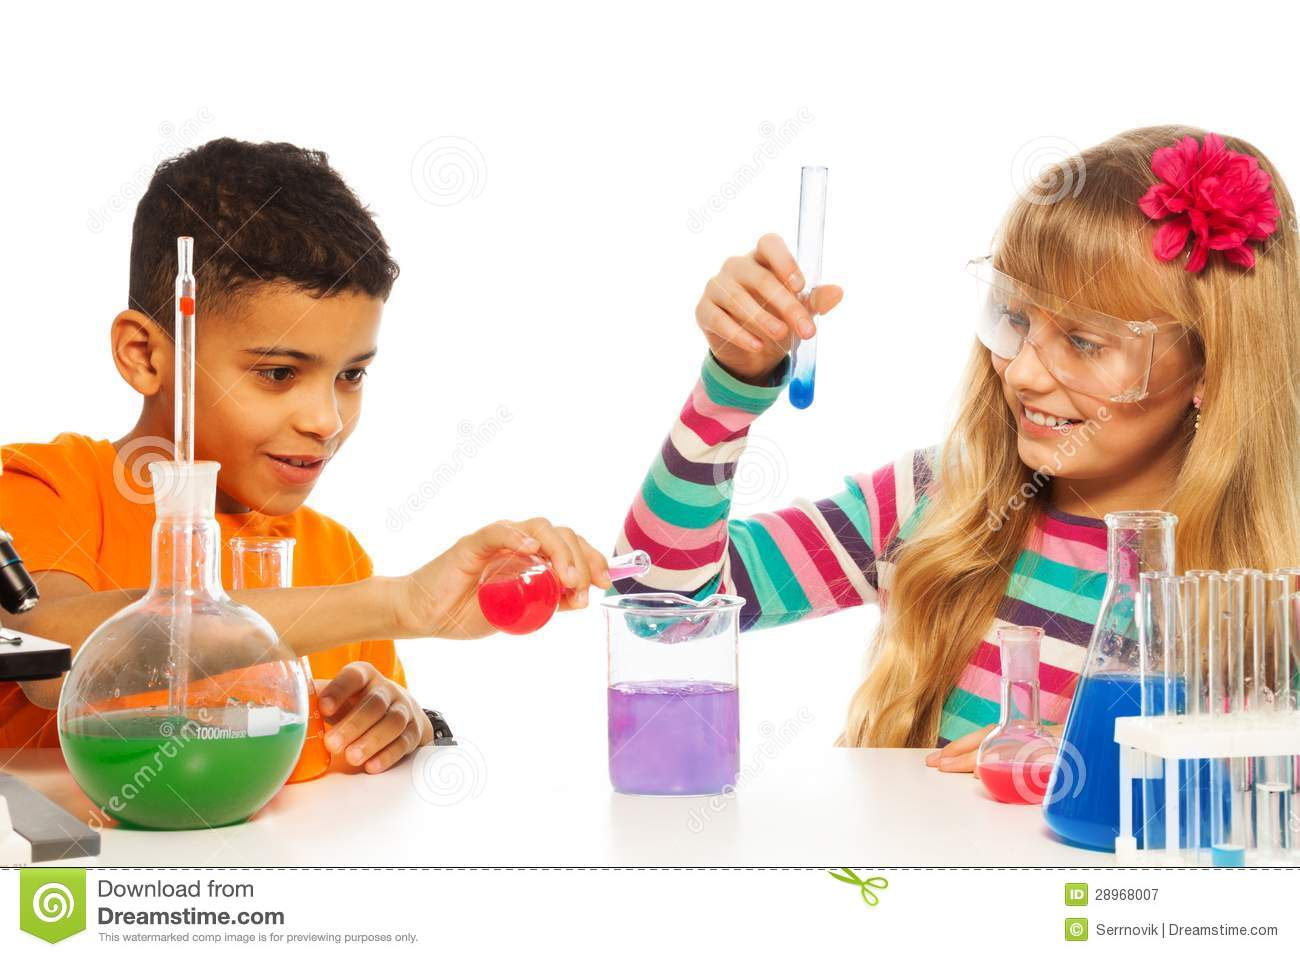 Http Www Dreamstime Com Royalty Free Stock Photography Kids Experimenting Chemistry Image28968007